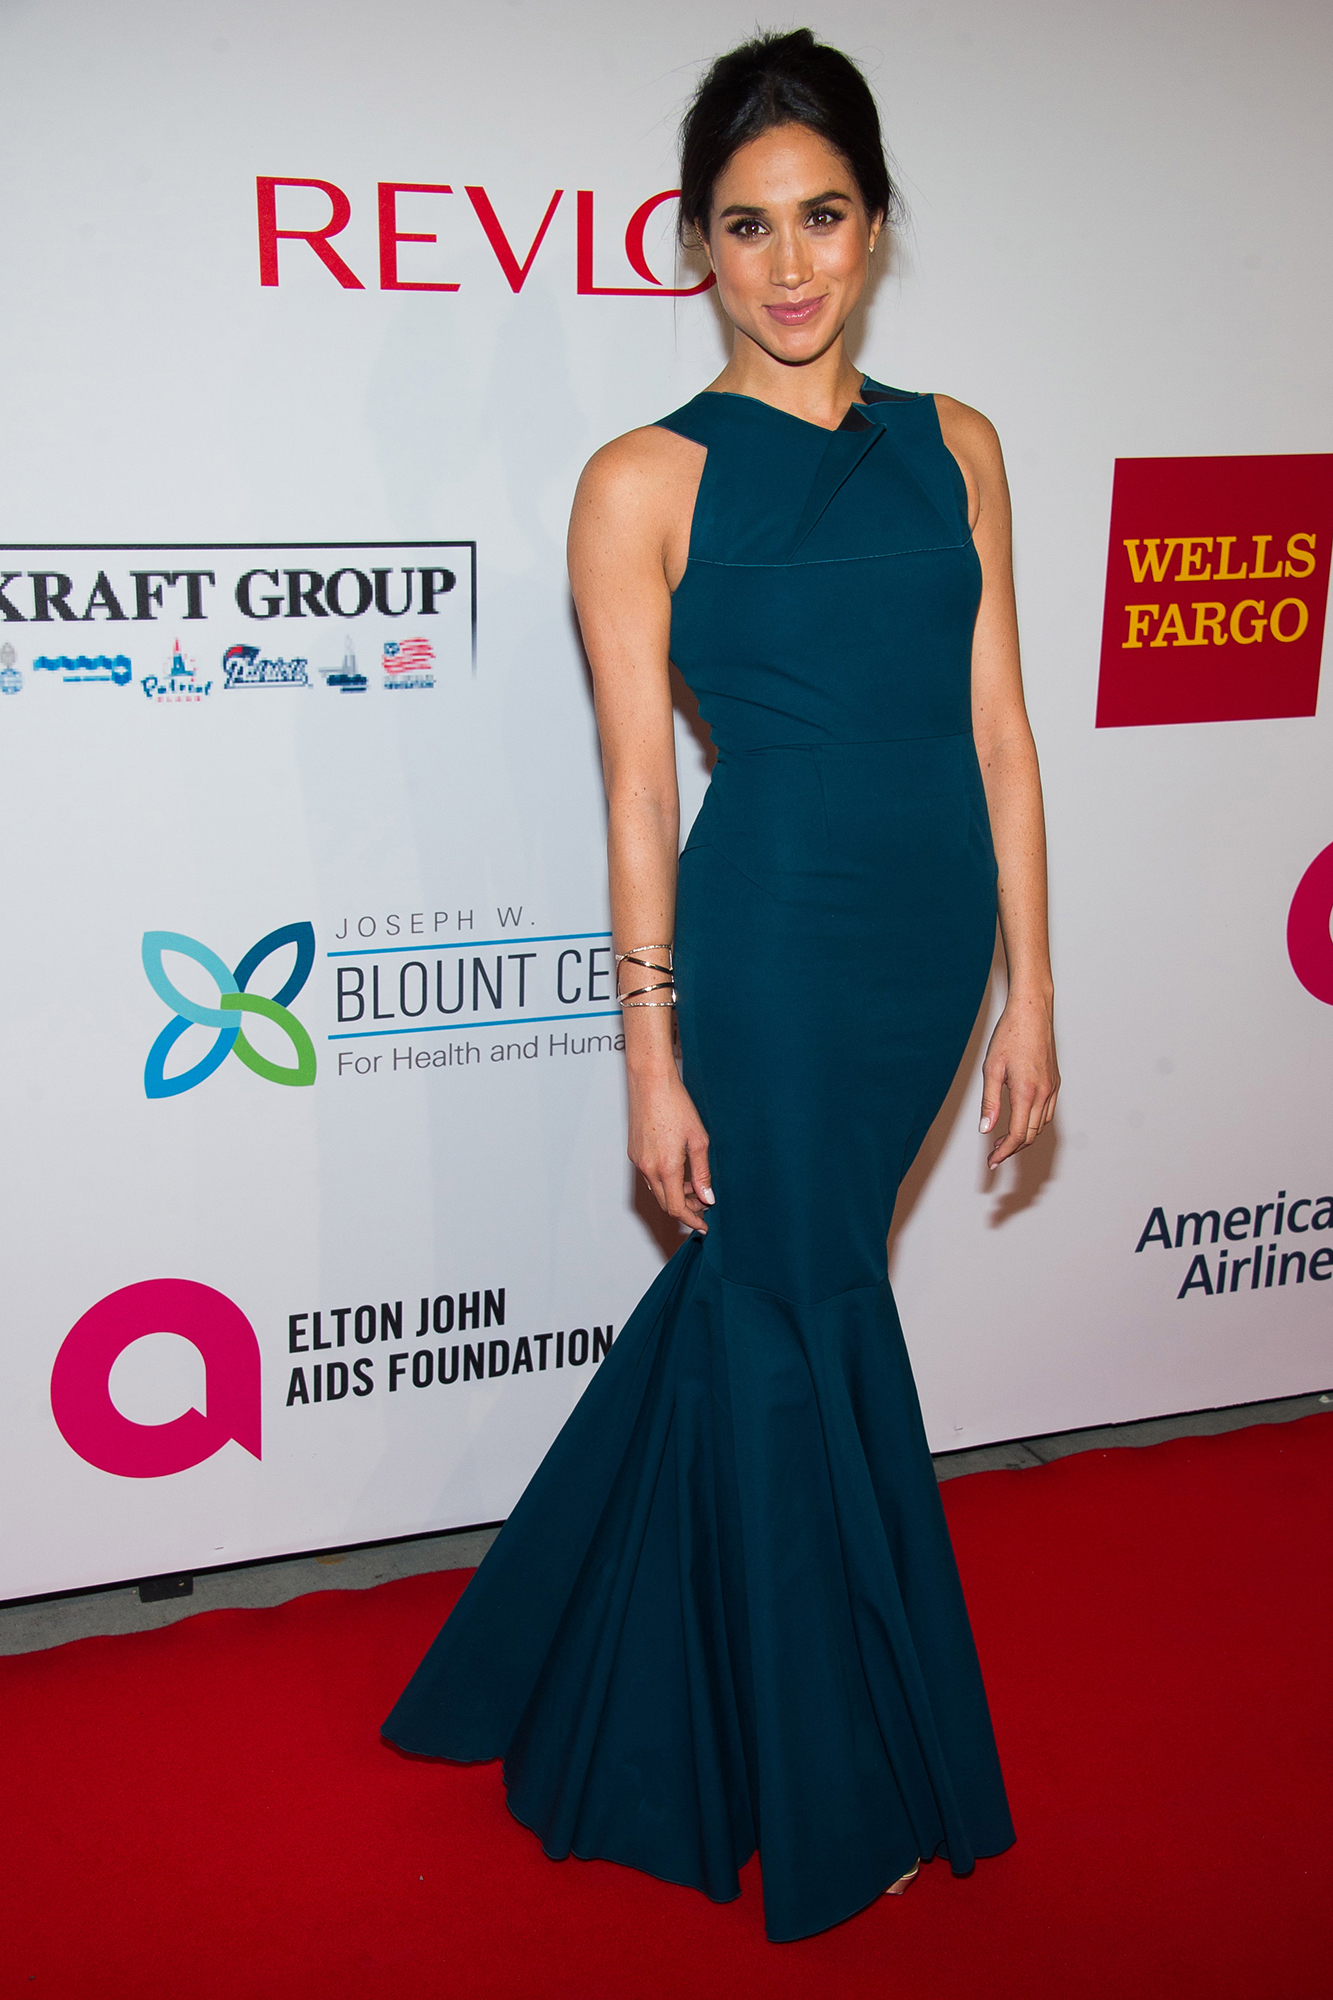 <div class='meta'><div class='origin-logo' data-origin='AP'></div><span class='caption-text' data-credit='Charles Sykes/Invision/AP'>Meghan Markle attends the Elton John AIDS Foundation's 13th Annual &#34;An Enduring Vision&#34; benefit at Cipriani's Wall Street on Tuesday, Oct. 28, 2014, in New York.</span></div>